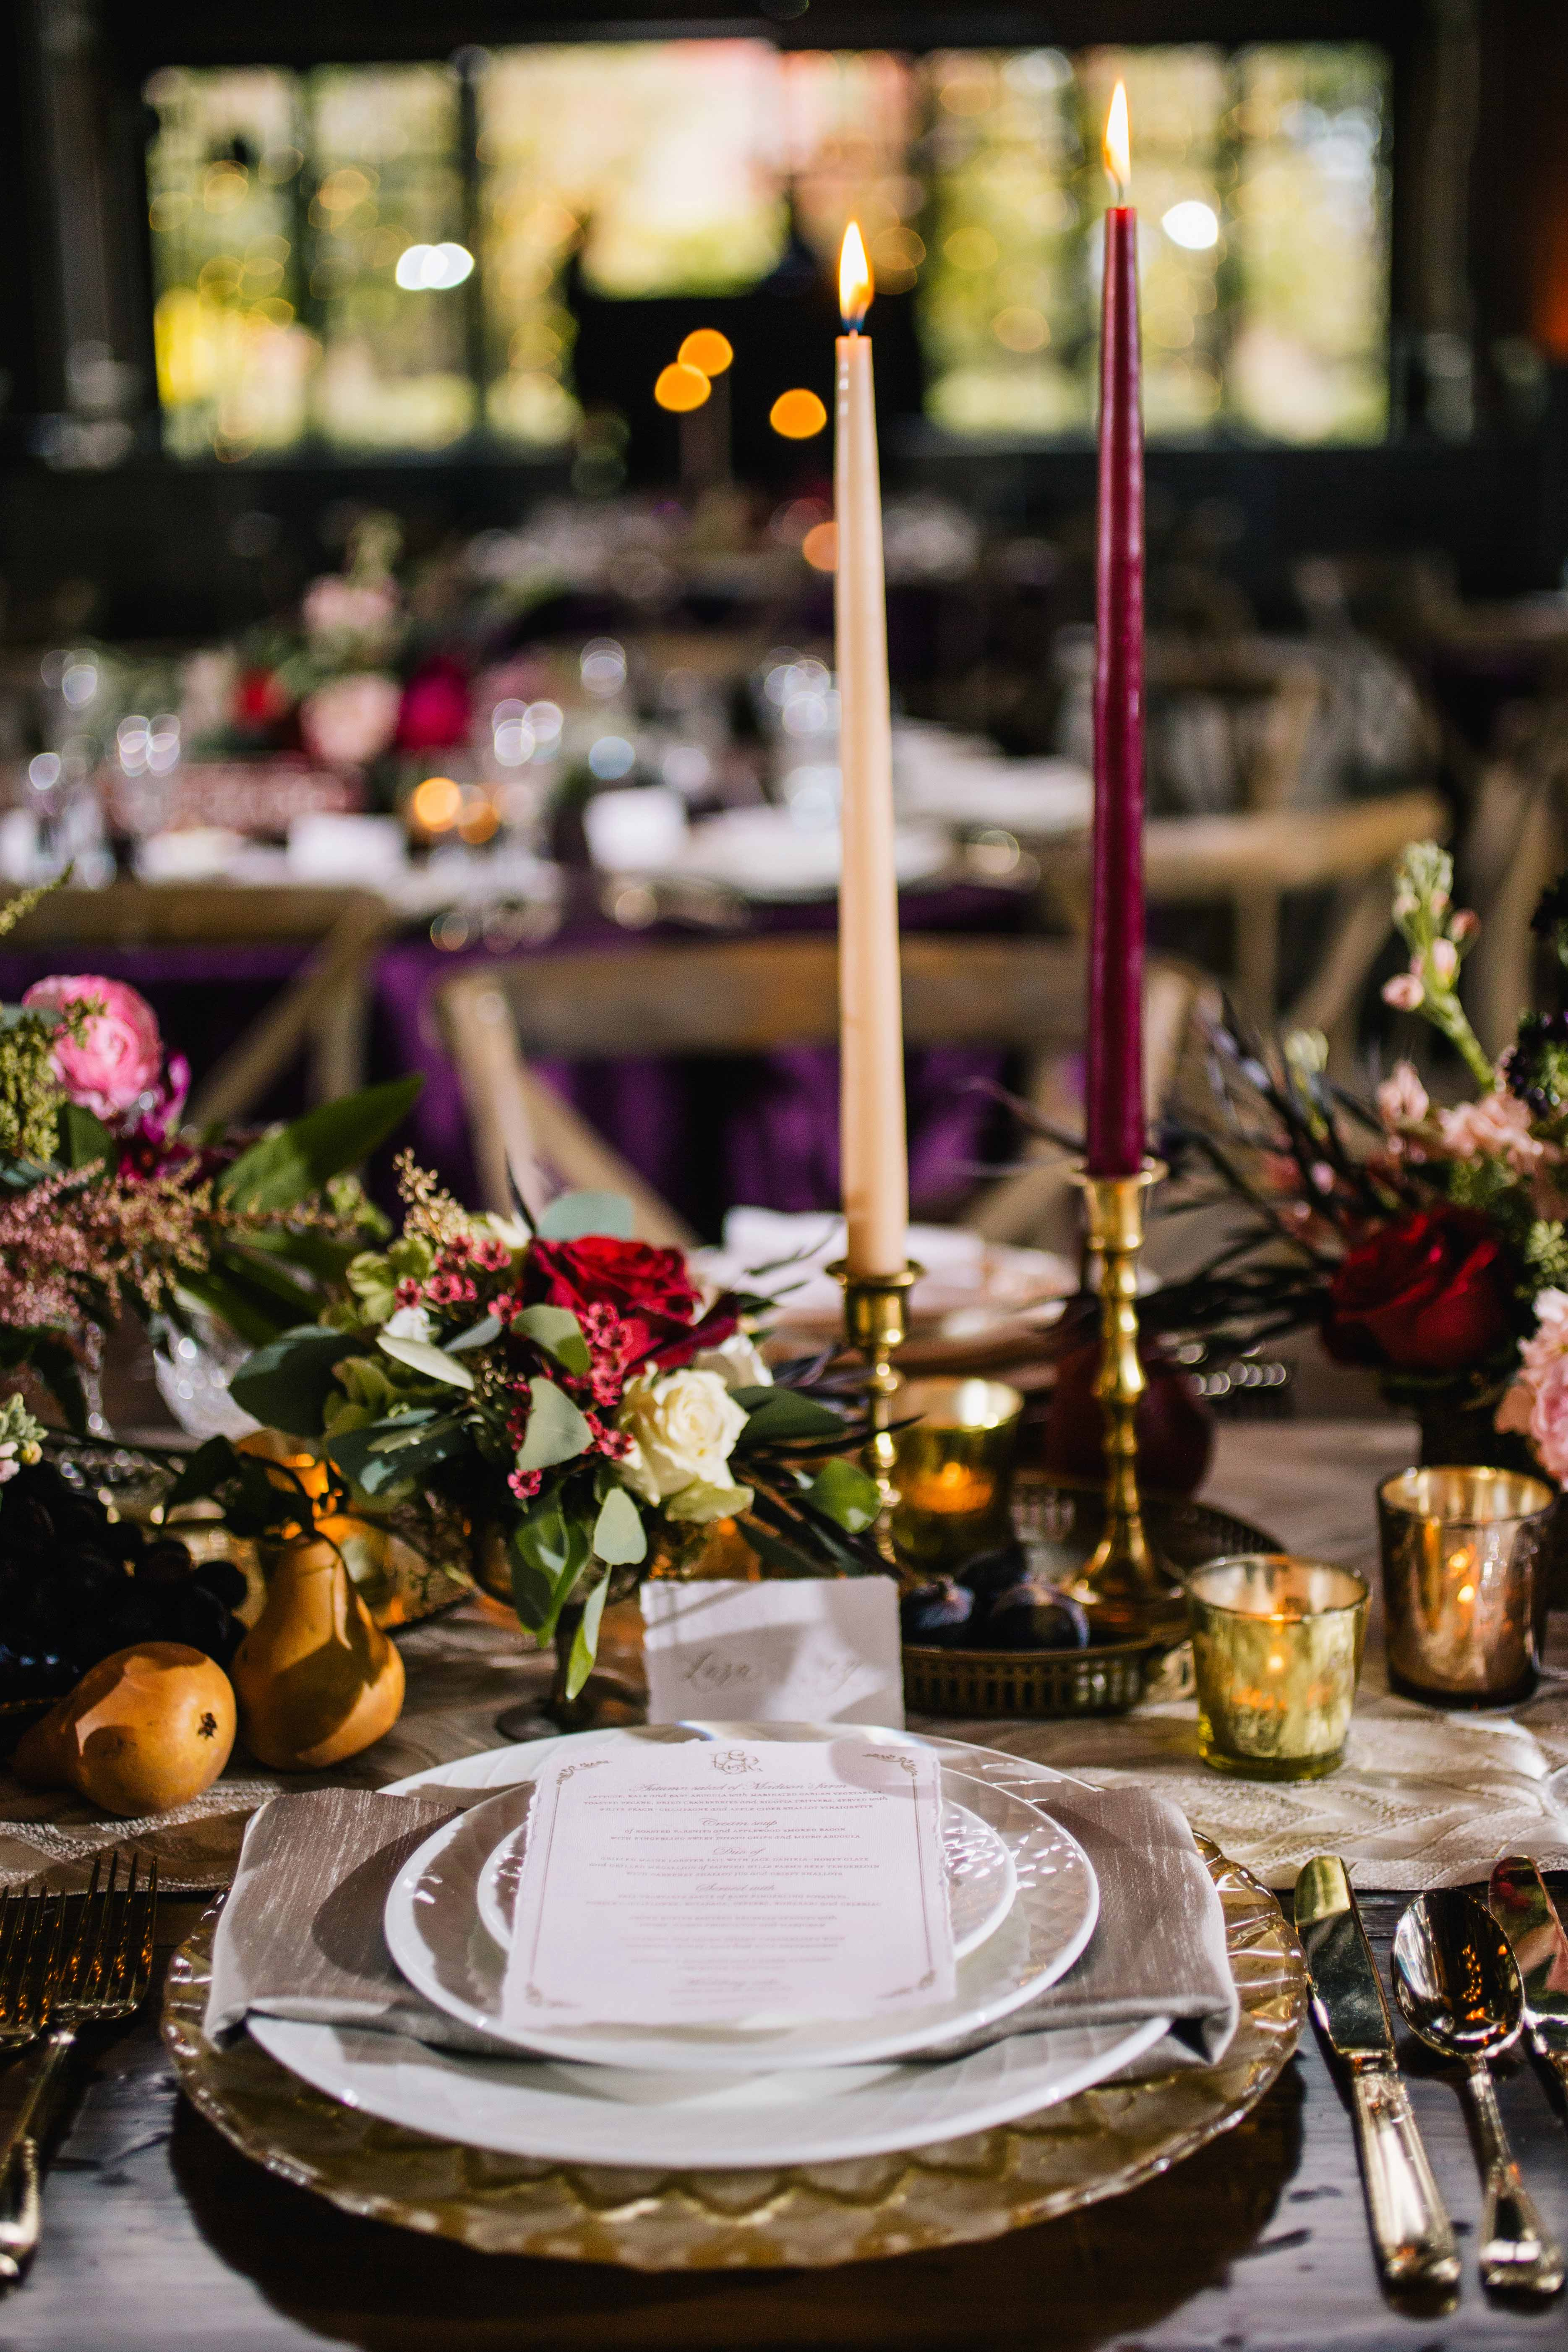 Dark and moody wedding reception place setting with tall taper candles